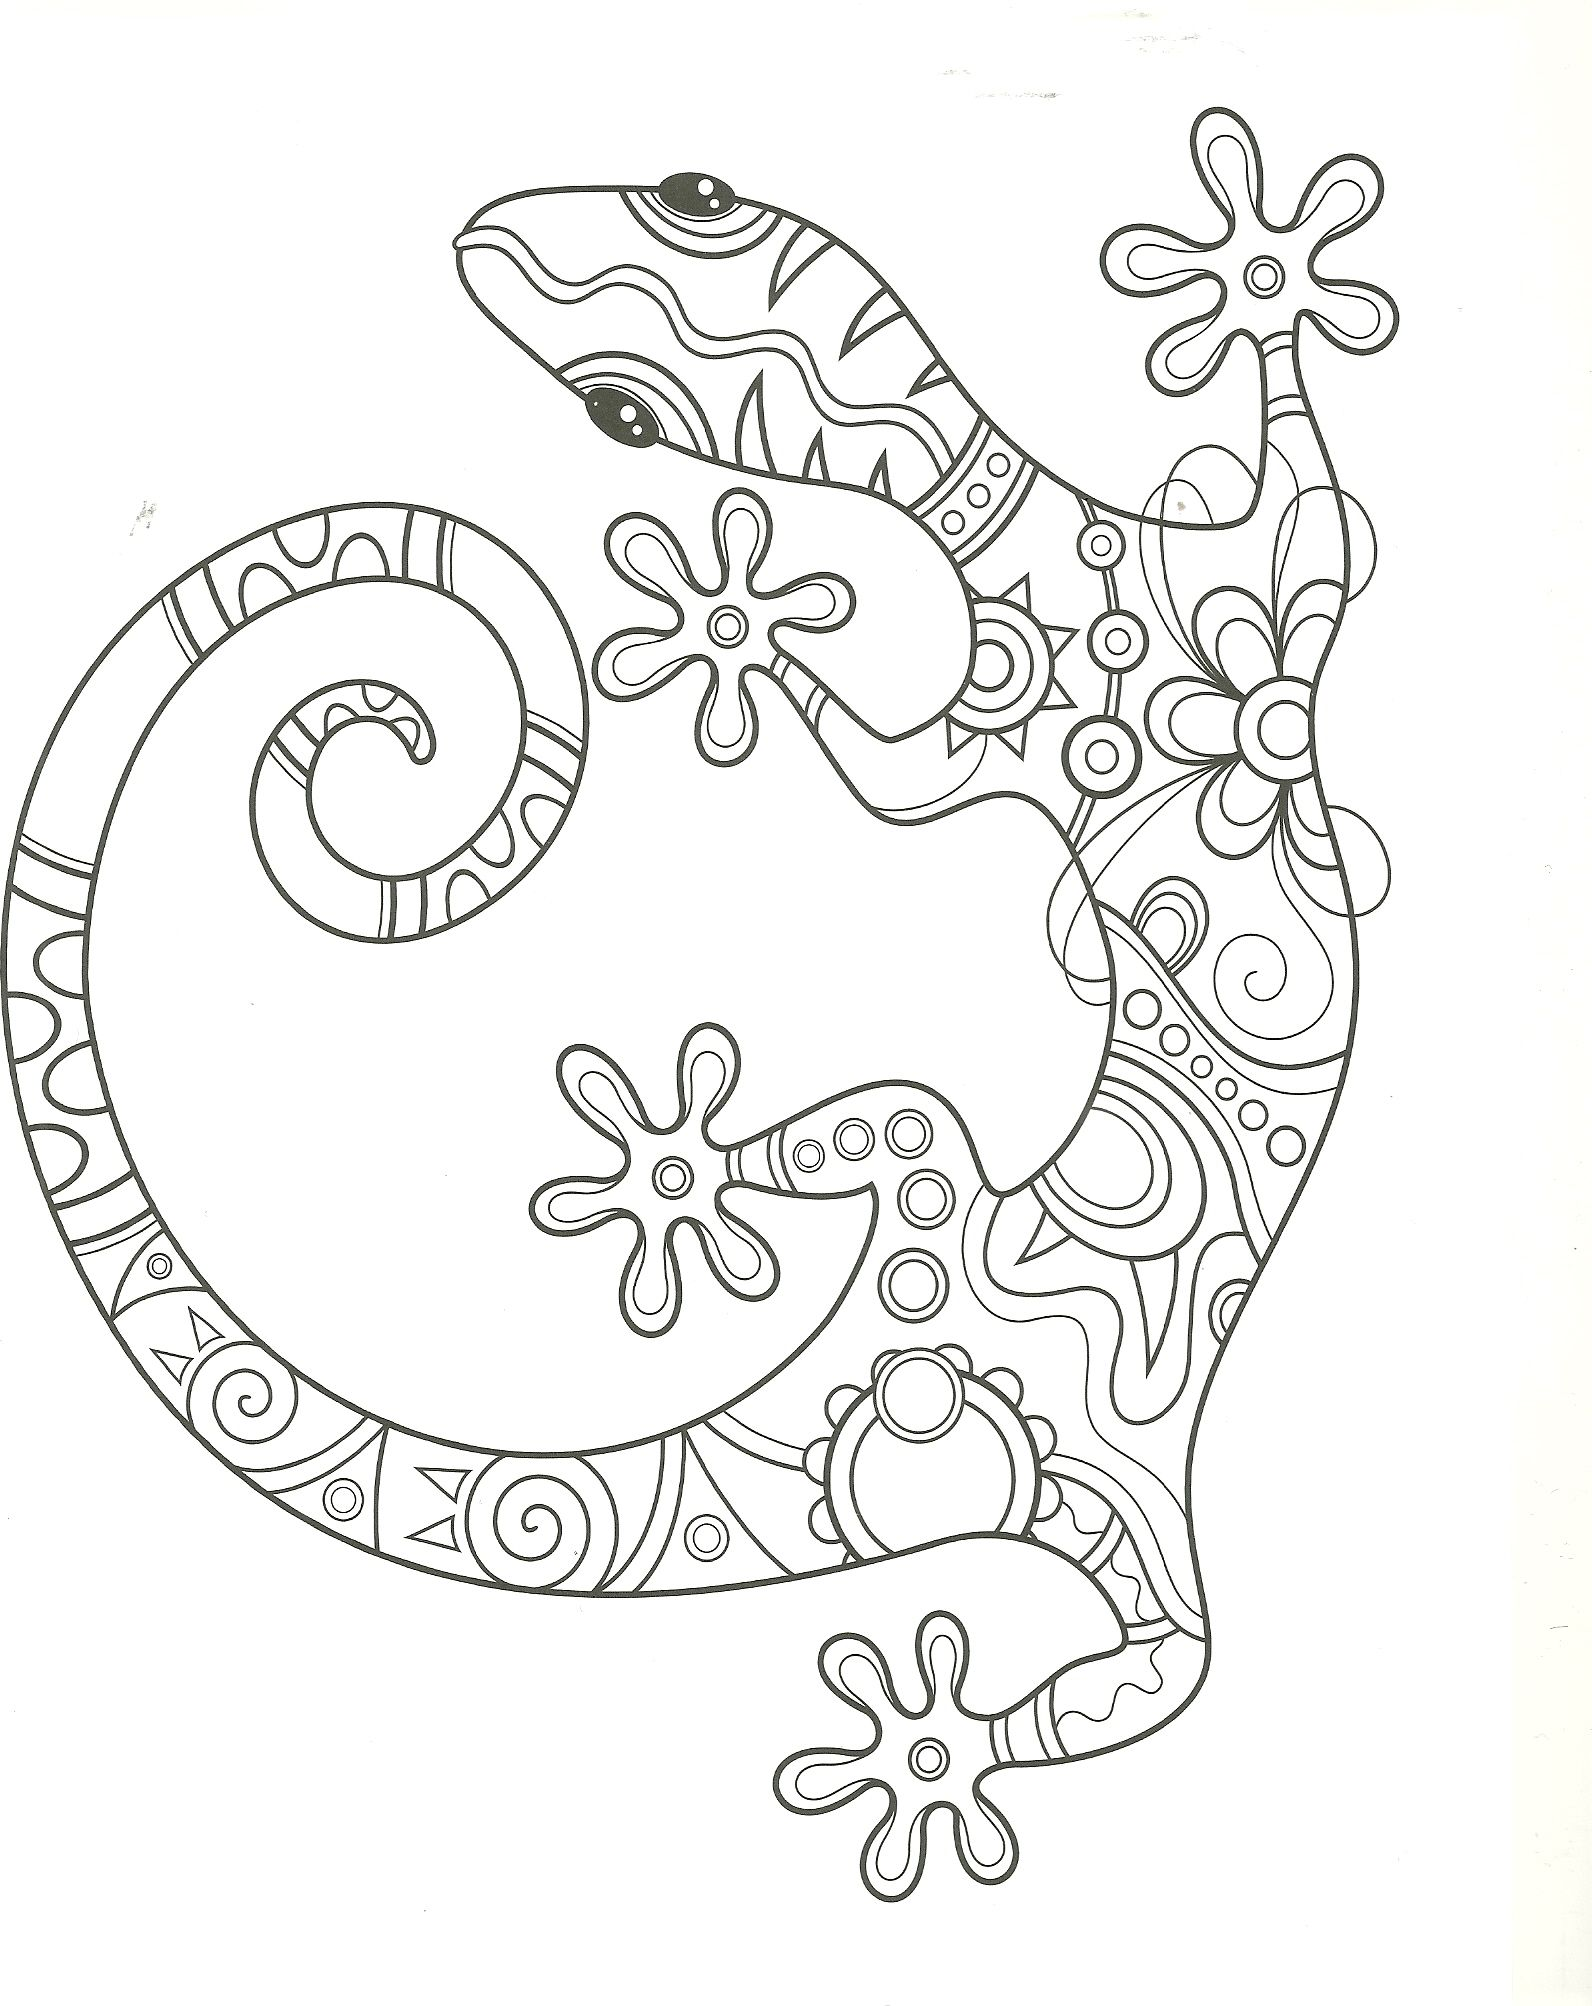 Lizard Coloring Page Snake Coloring Pages Coloring Pages Free